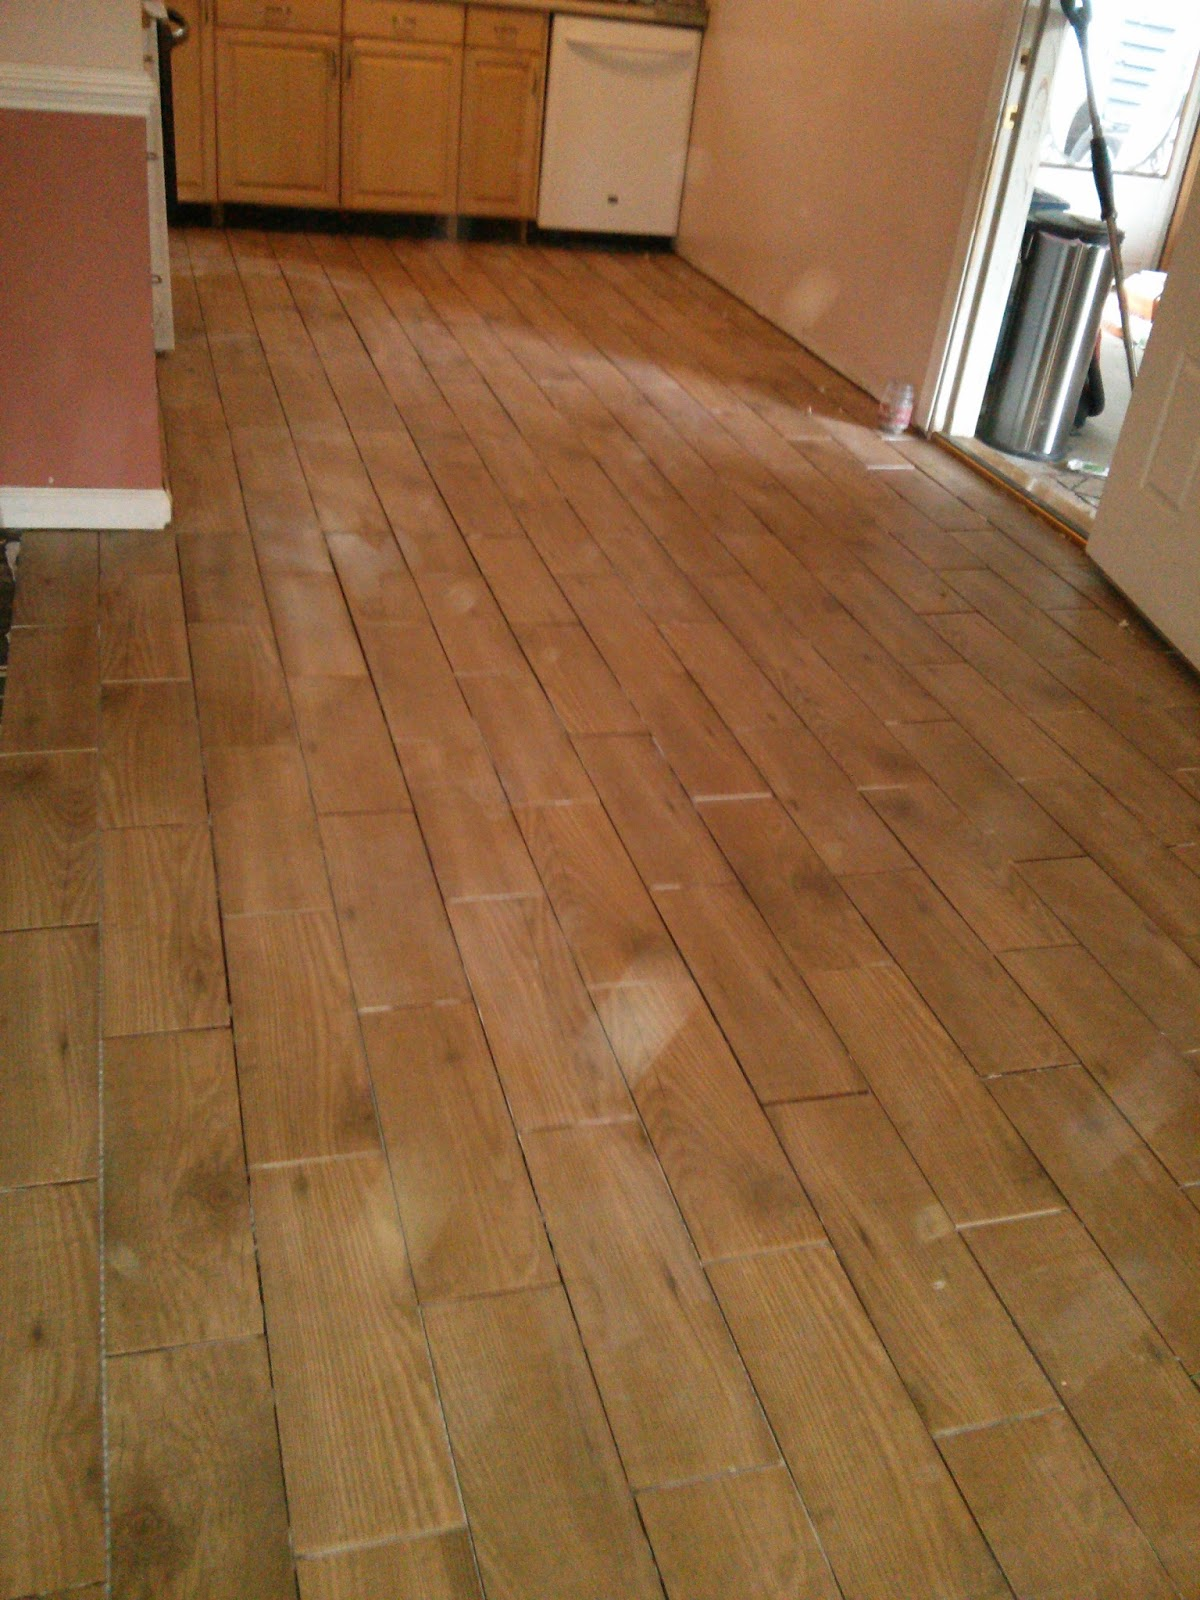 Porcelain Floor Tiles Floor Installation Photos Wood Look Porcelain Tile In